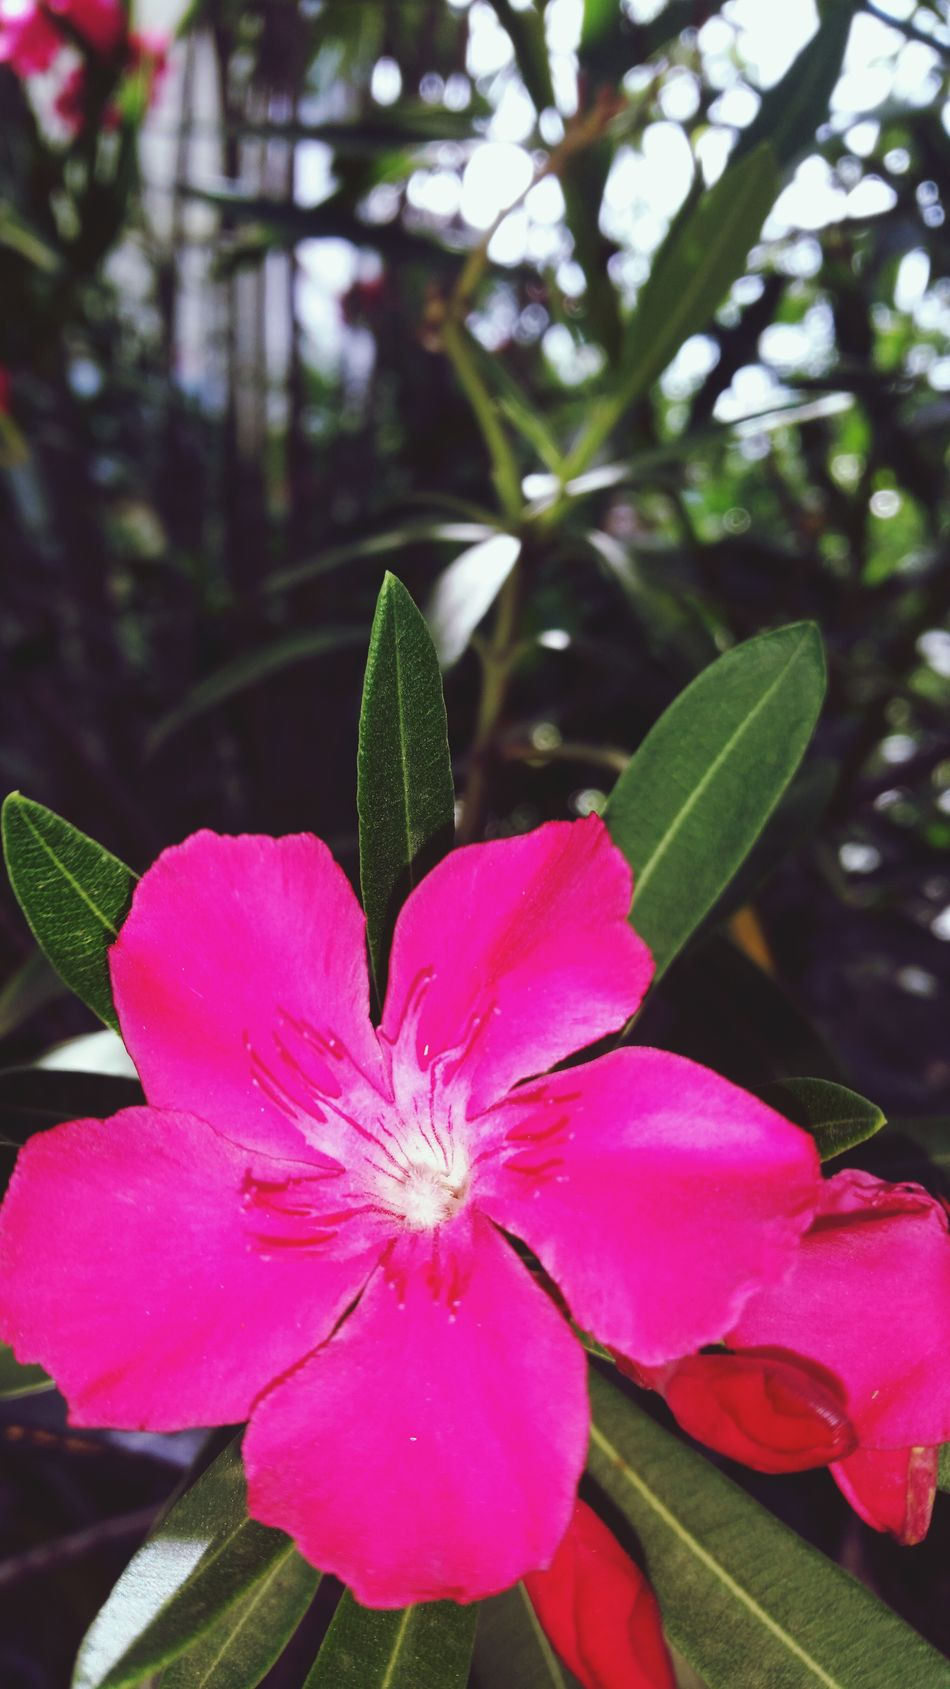 Flower Petal Freshness Growth Fragility Pink Color Flower Head Beauty In Nature Close-up Focus On Foreground Nature Plant Pink Stamen In Bloom Single Flower Vibrant Color Blooming Springtime Blossom Pink Flower